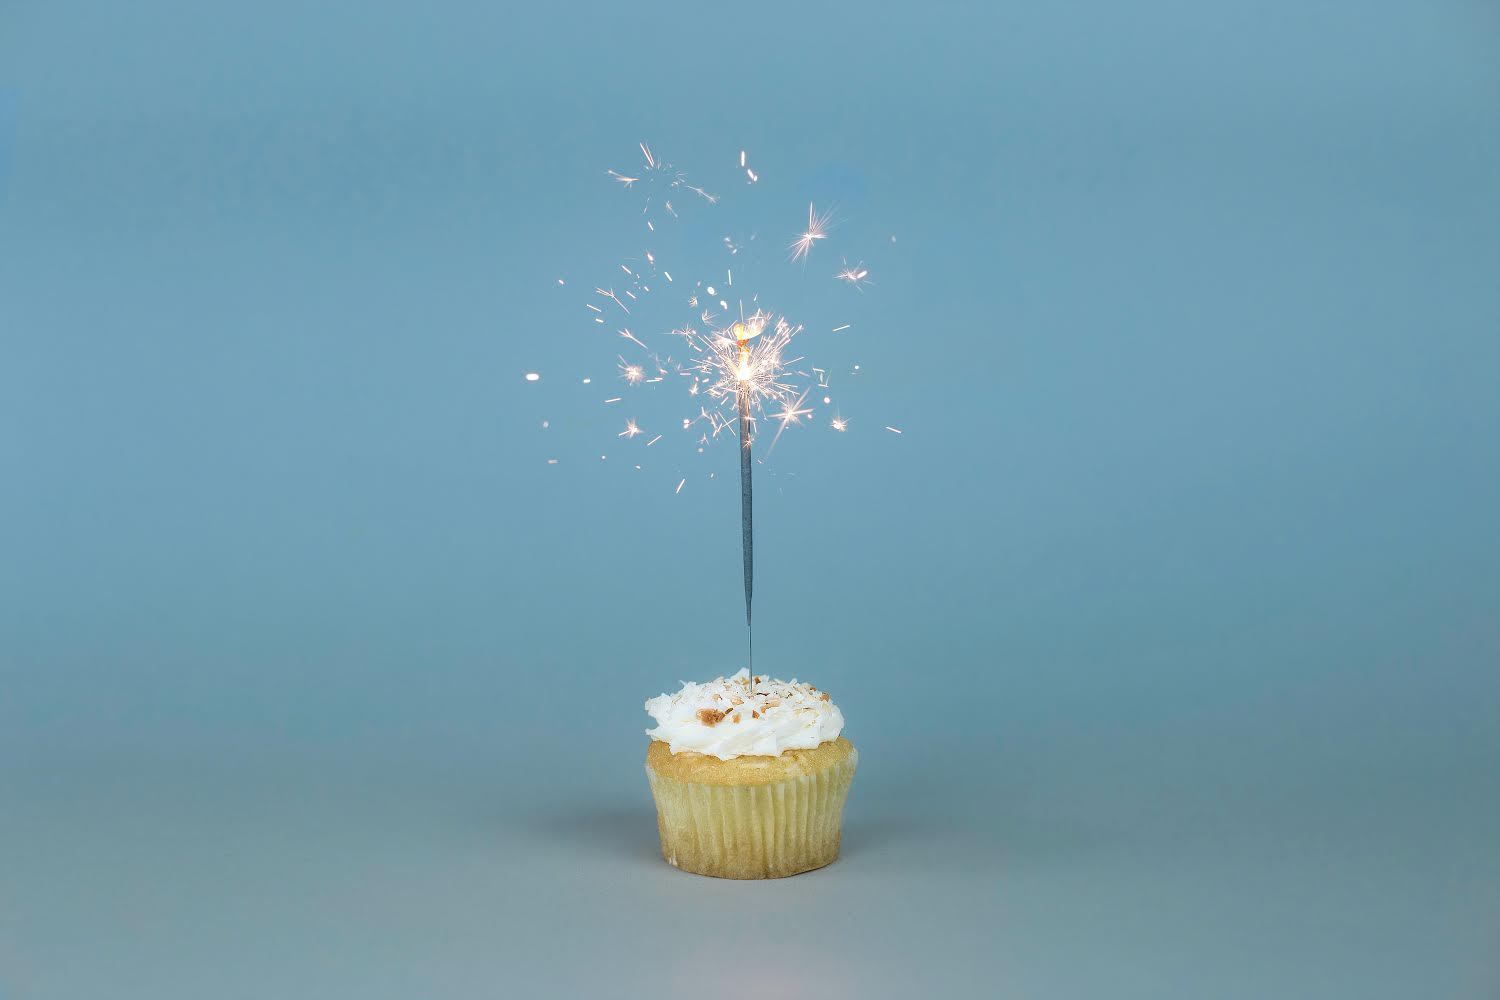 50 Fabulous Things About Turning 50!